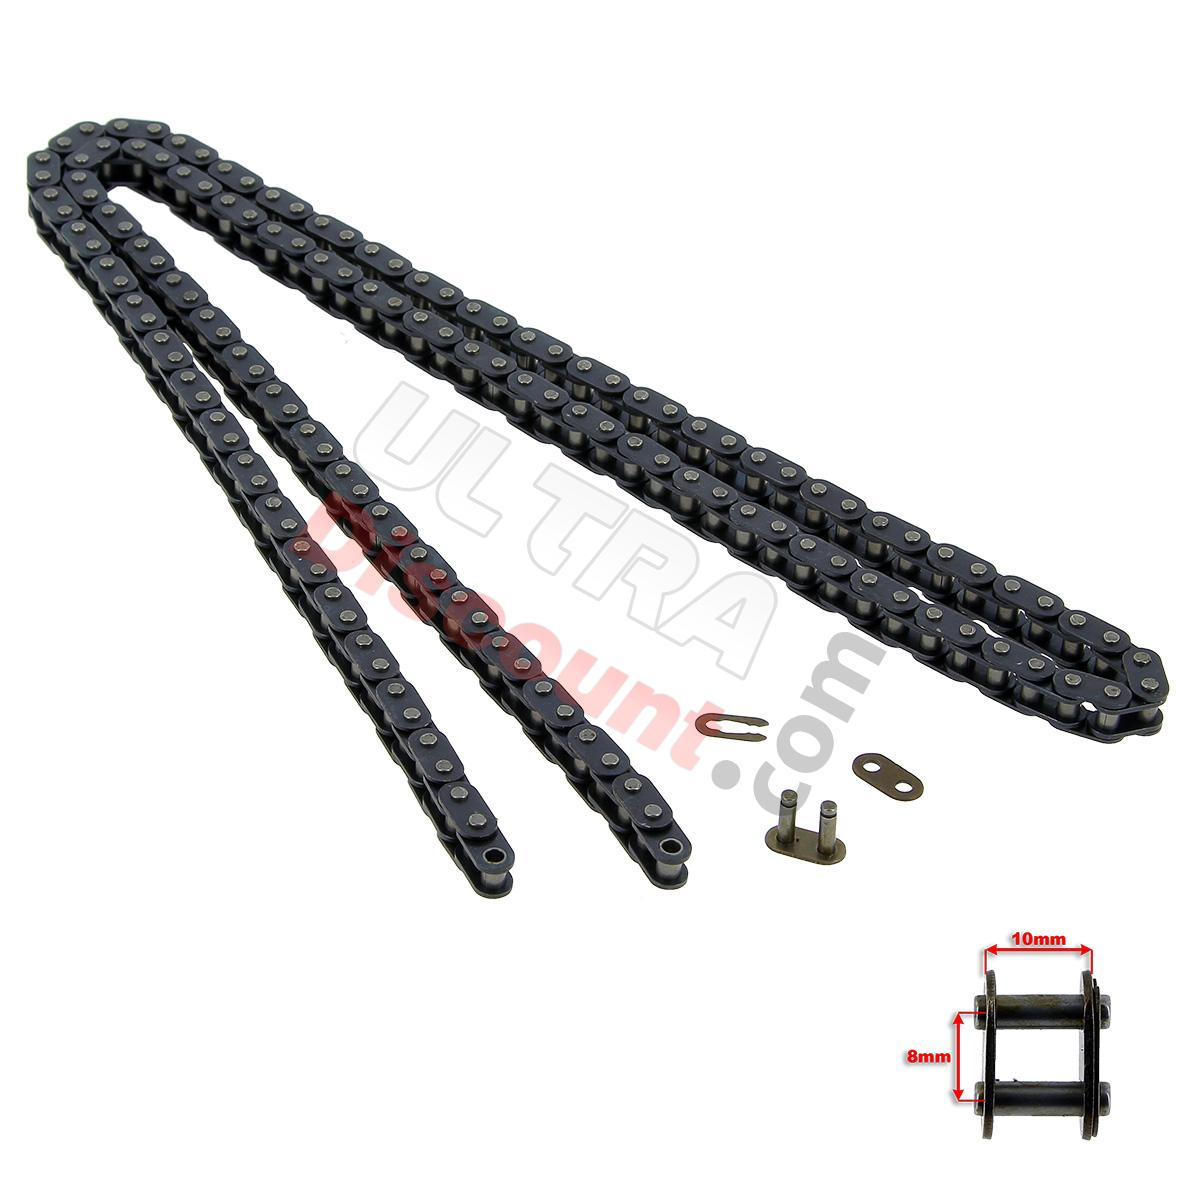 72 Large Links Reinforced Drive Chain For Cross Pocket